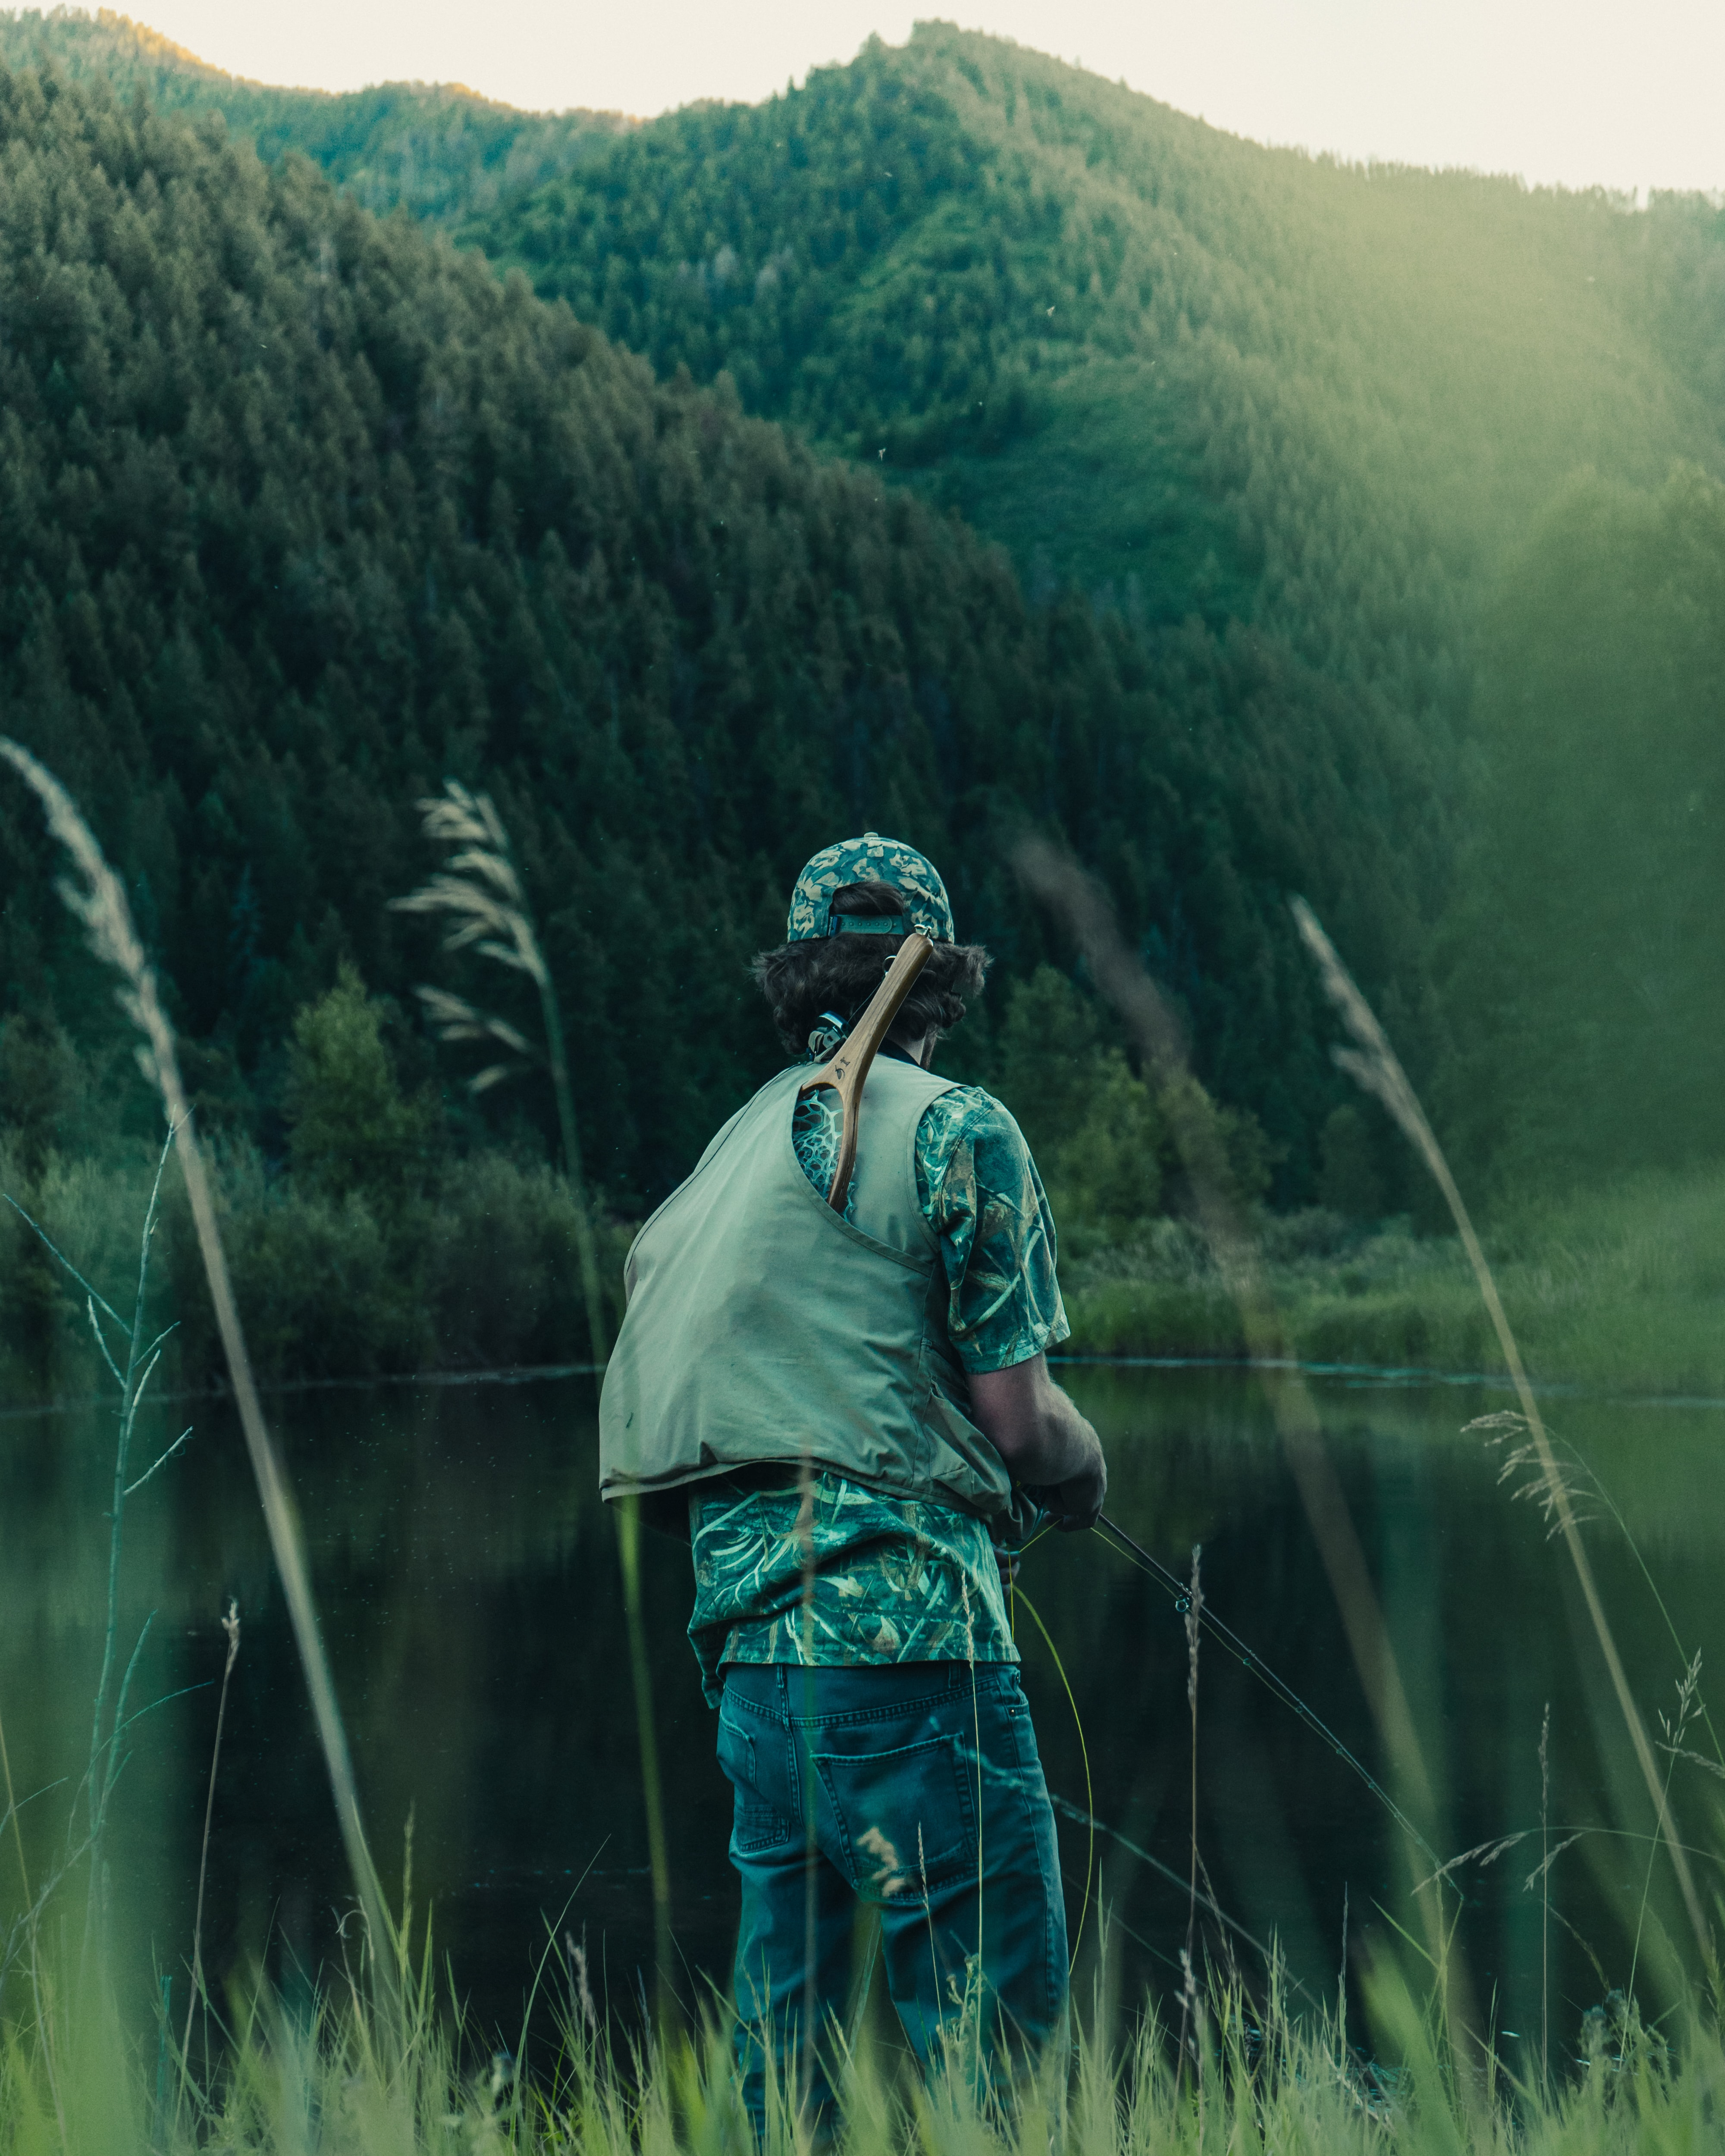 A man with a fishing net on his back over a mountain lake